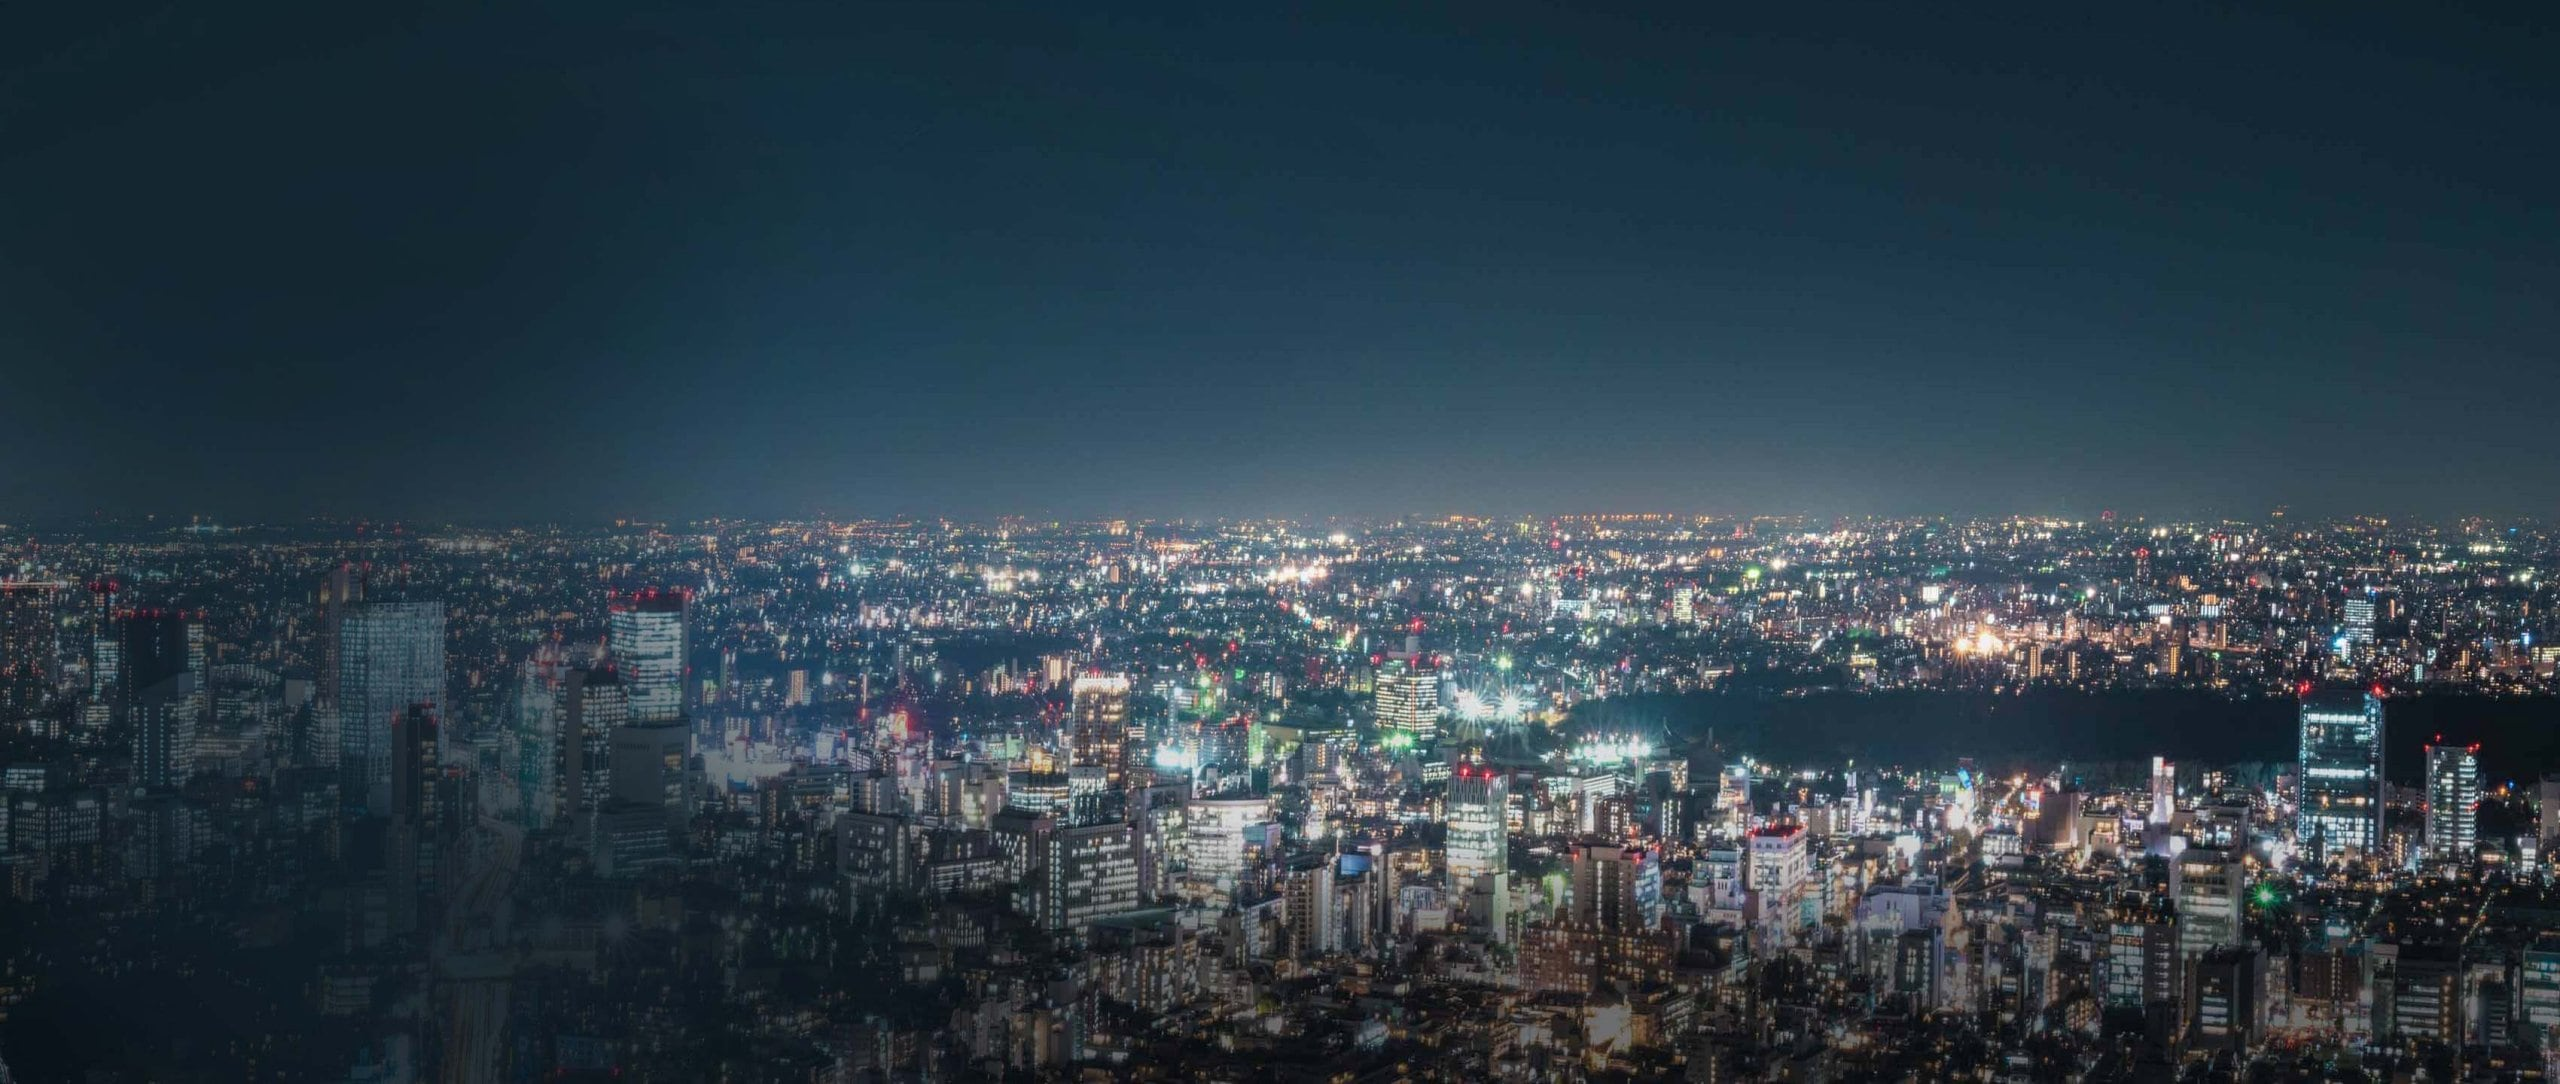 Tokyo, one of the world's busiest cities. The more environmentally friendly the transport, the higher the quality of life.